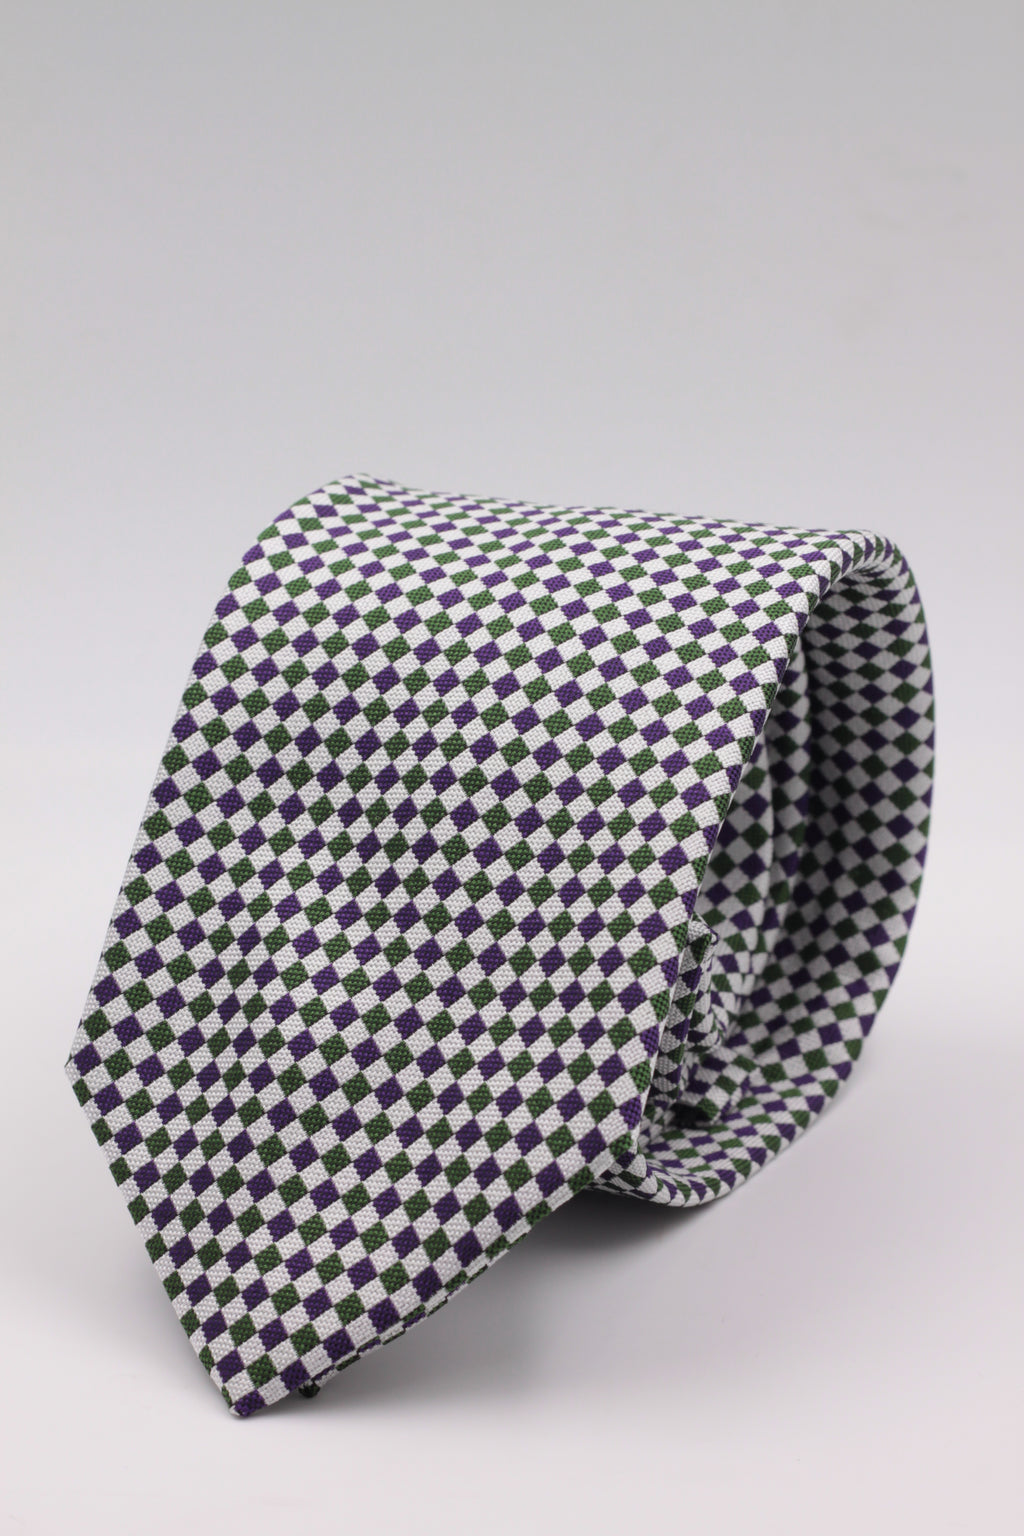 Cruciani & Bella 100% Woven Jacquard Silk Italian Fabric Tipped Green and Purple Optical tie Handmade in italy 8 x 150 cm